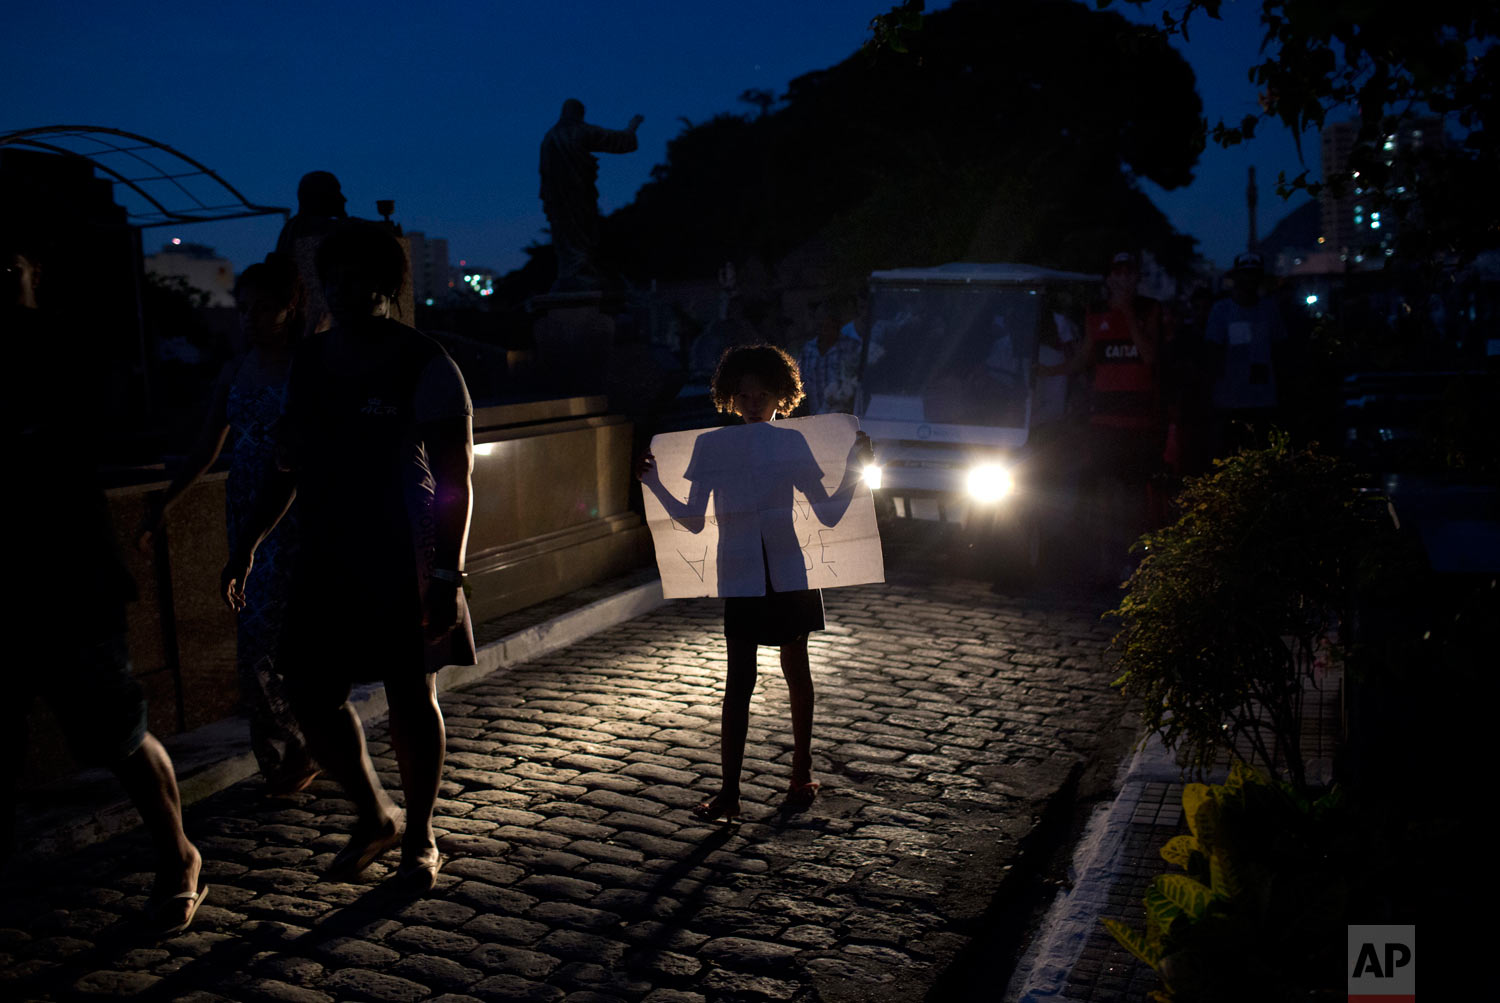 In this June 21, 2018 photo, a girl holds a sign protesting the death of Marcos Vinicius da Silva, illuminated by the vehicle transporting his coffin at a cemetery in Rio de Janeiro, Brazil. Da Silva is one of two 14-year-olds killed by stray bullets on Wednesday that week. (AP Photo/Silvia Izquierdo)